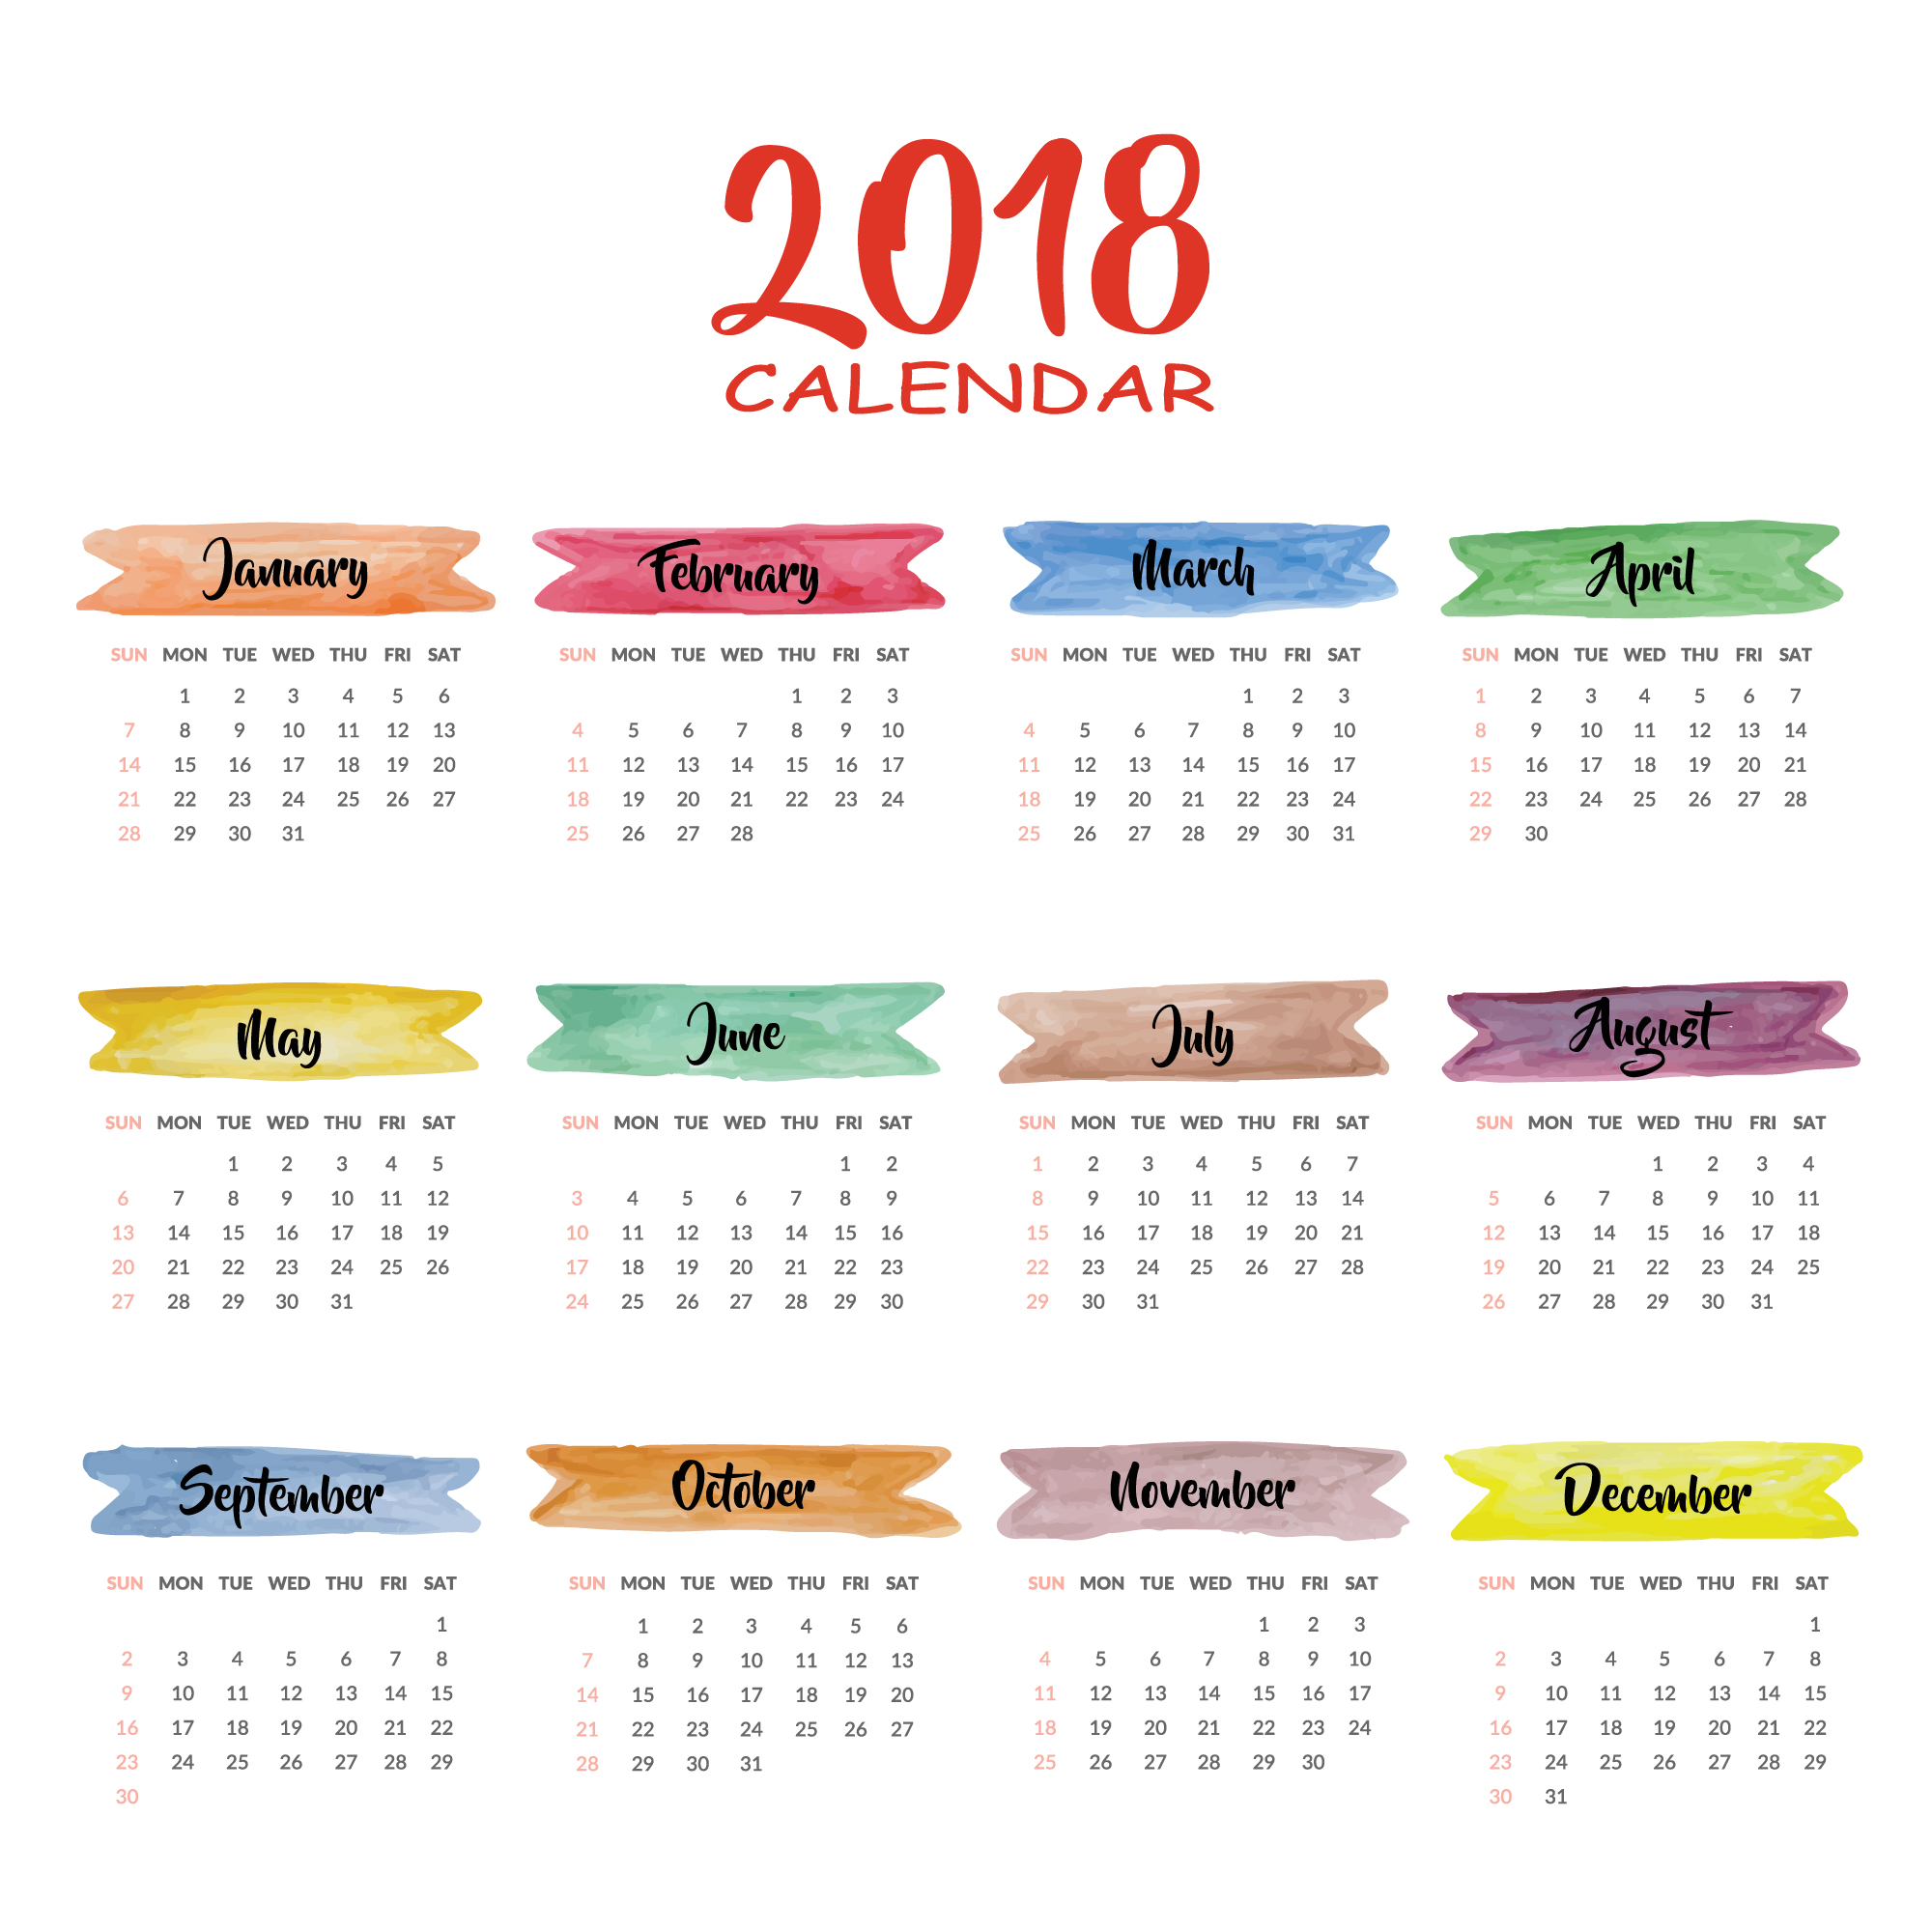 Calendar 2018 multicolor design